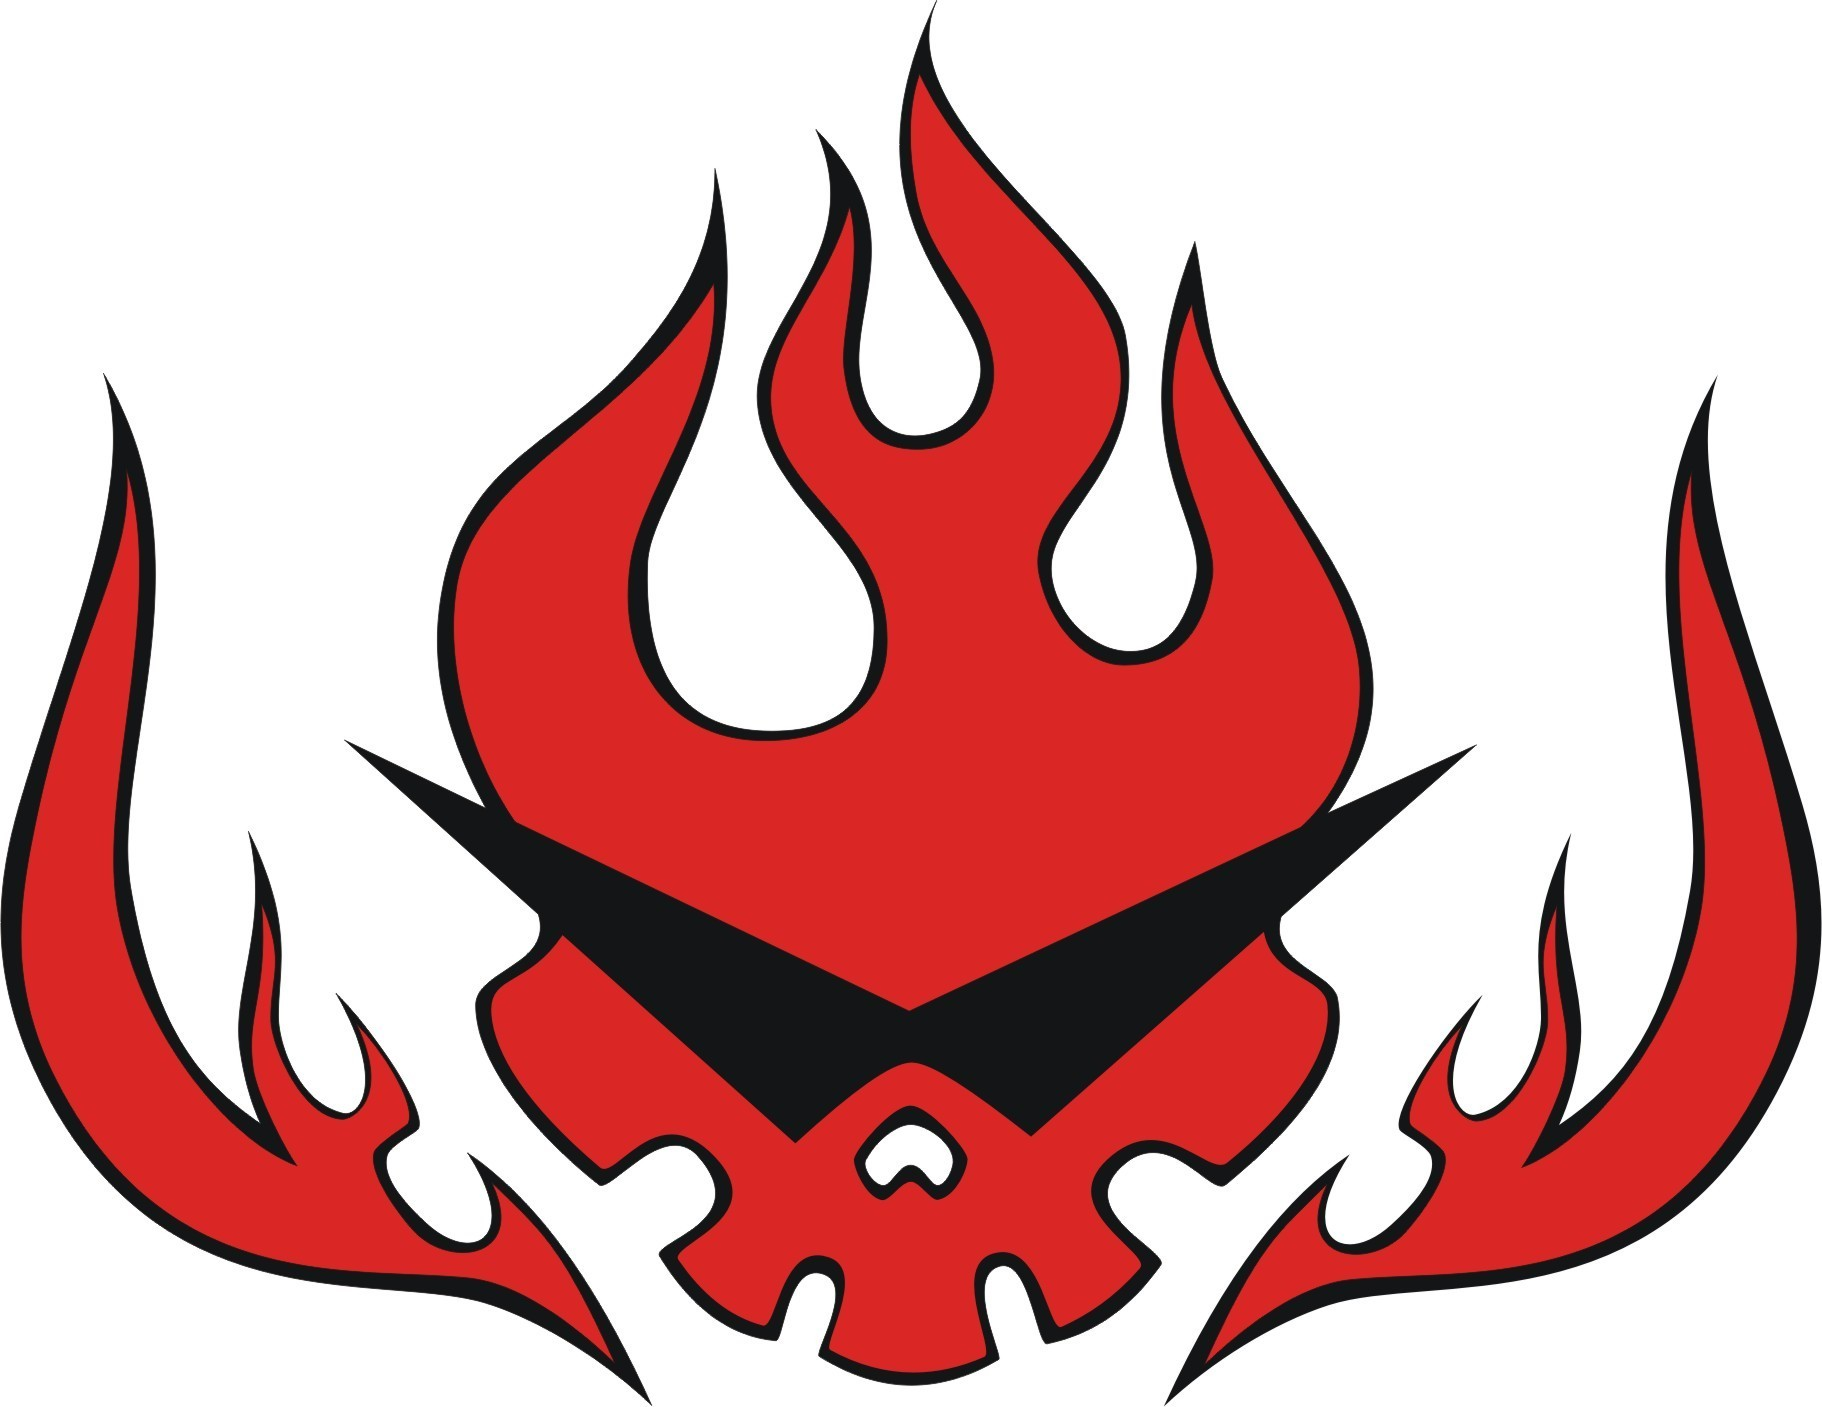 Awesome symbols thread | Page 2 | SpaceBattles Forums